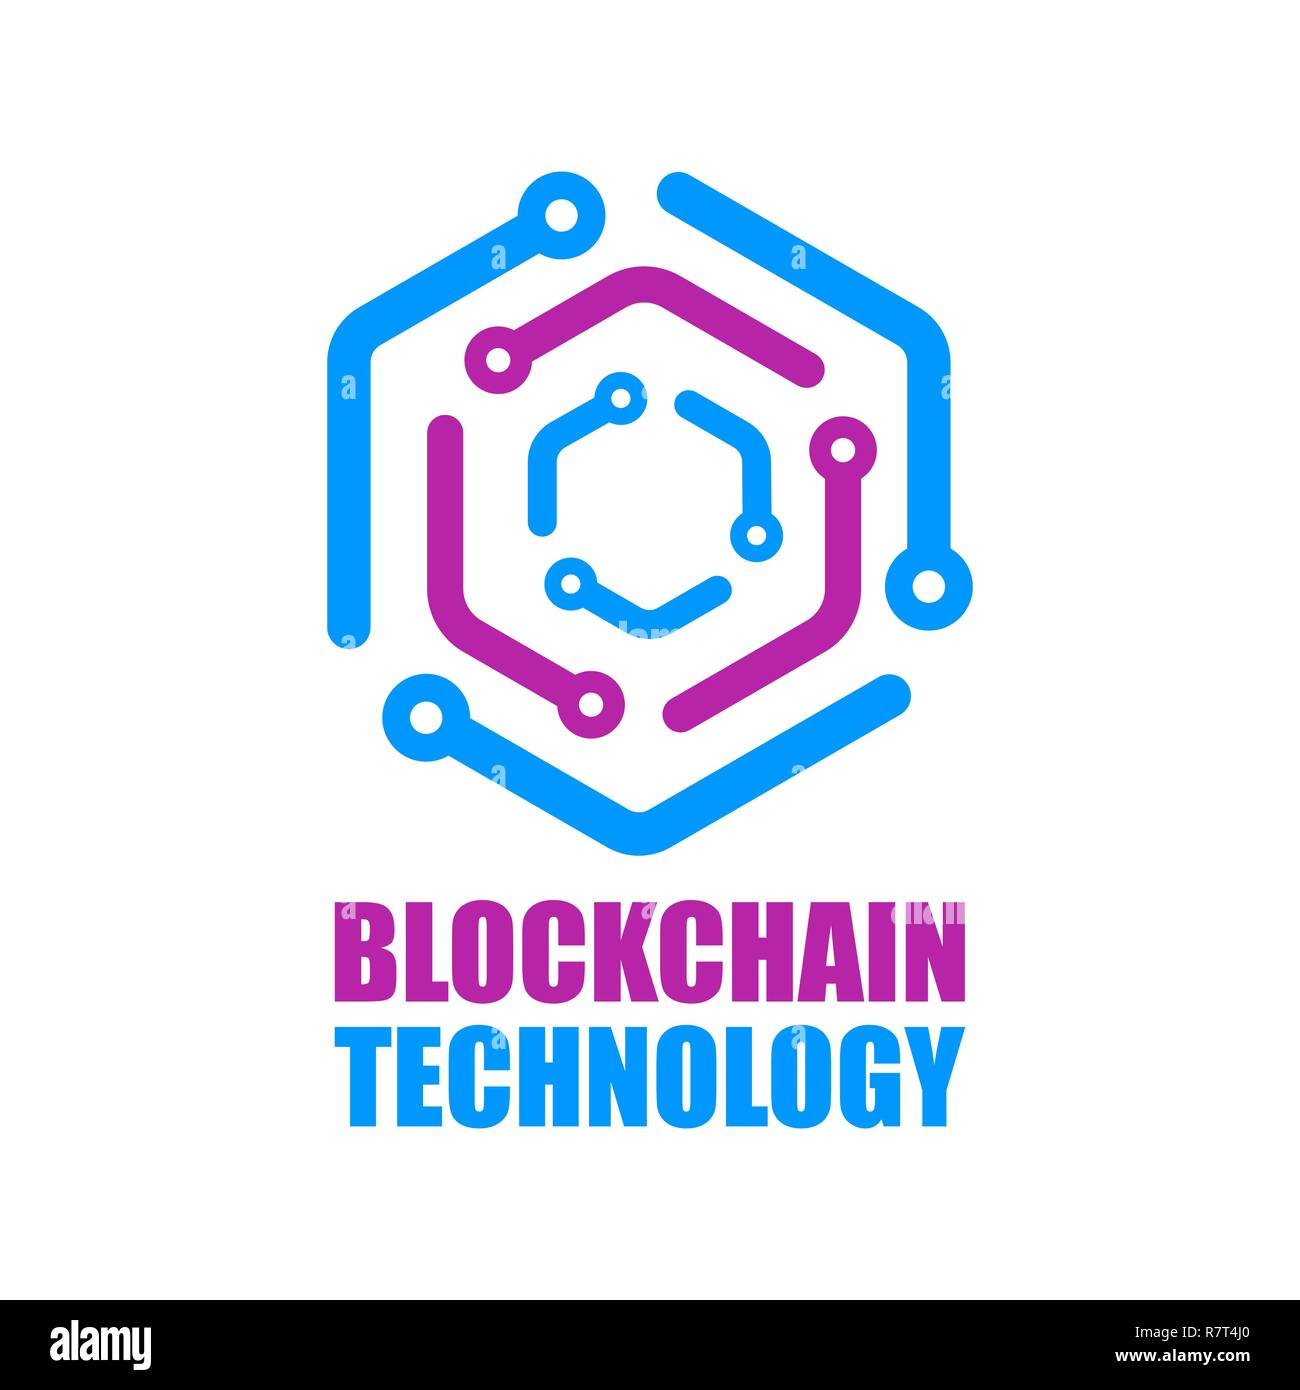 Blockchain technology icon. Vector smart contract block symbol. Decentralized transactions logo design. Crypto currencies network logotype. - Stock Image